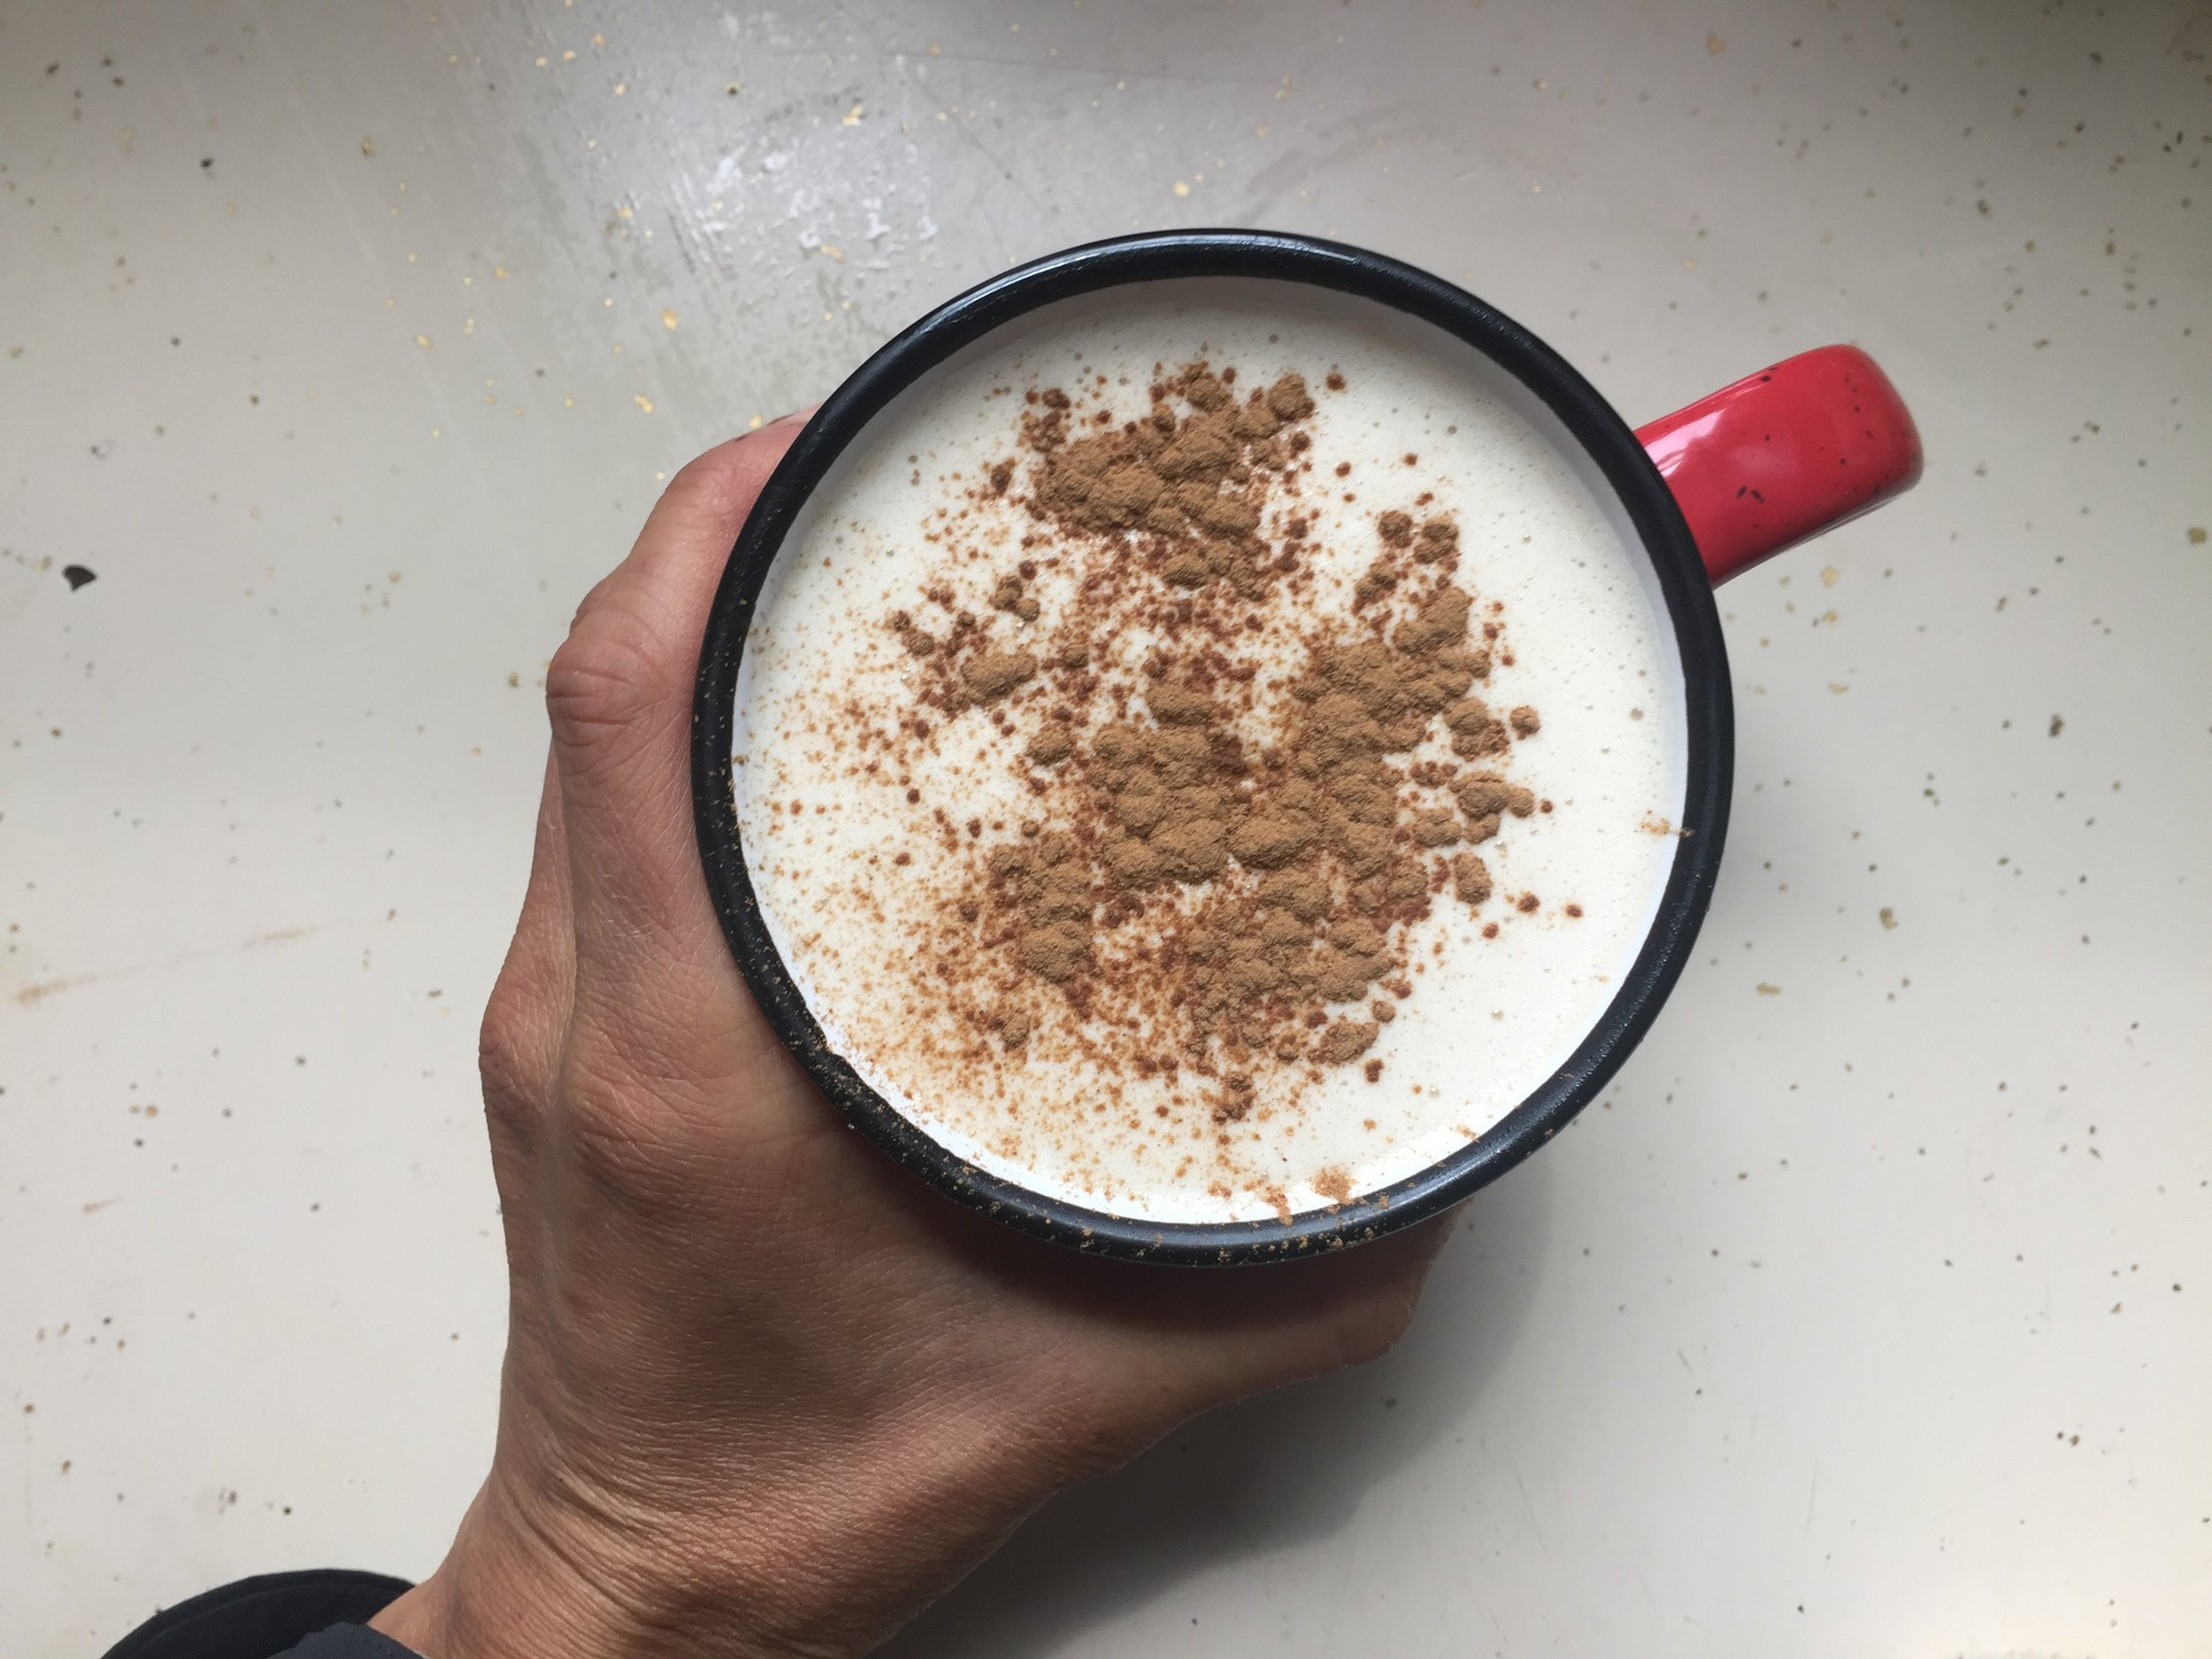 Mushroom Elixir topped with cinnamon (also a blood sugar stablizer)